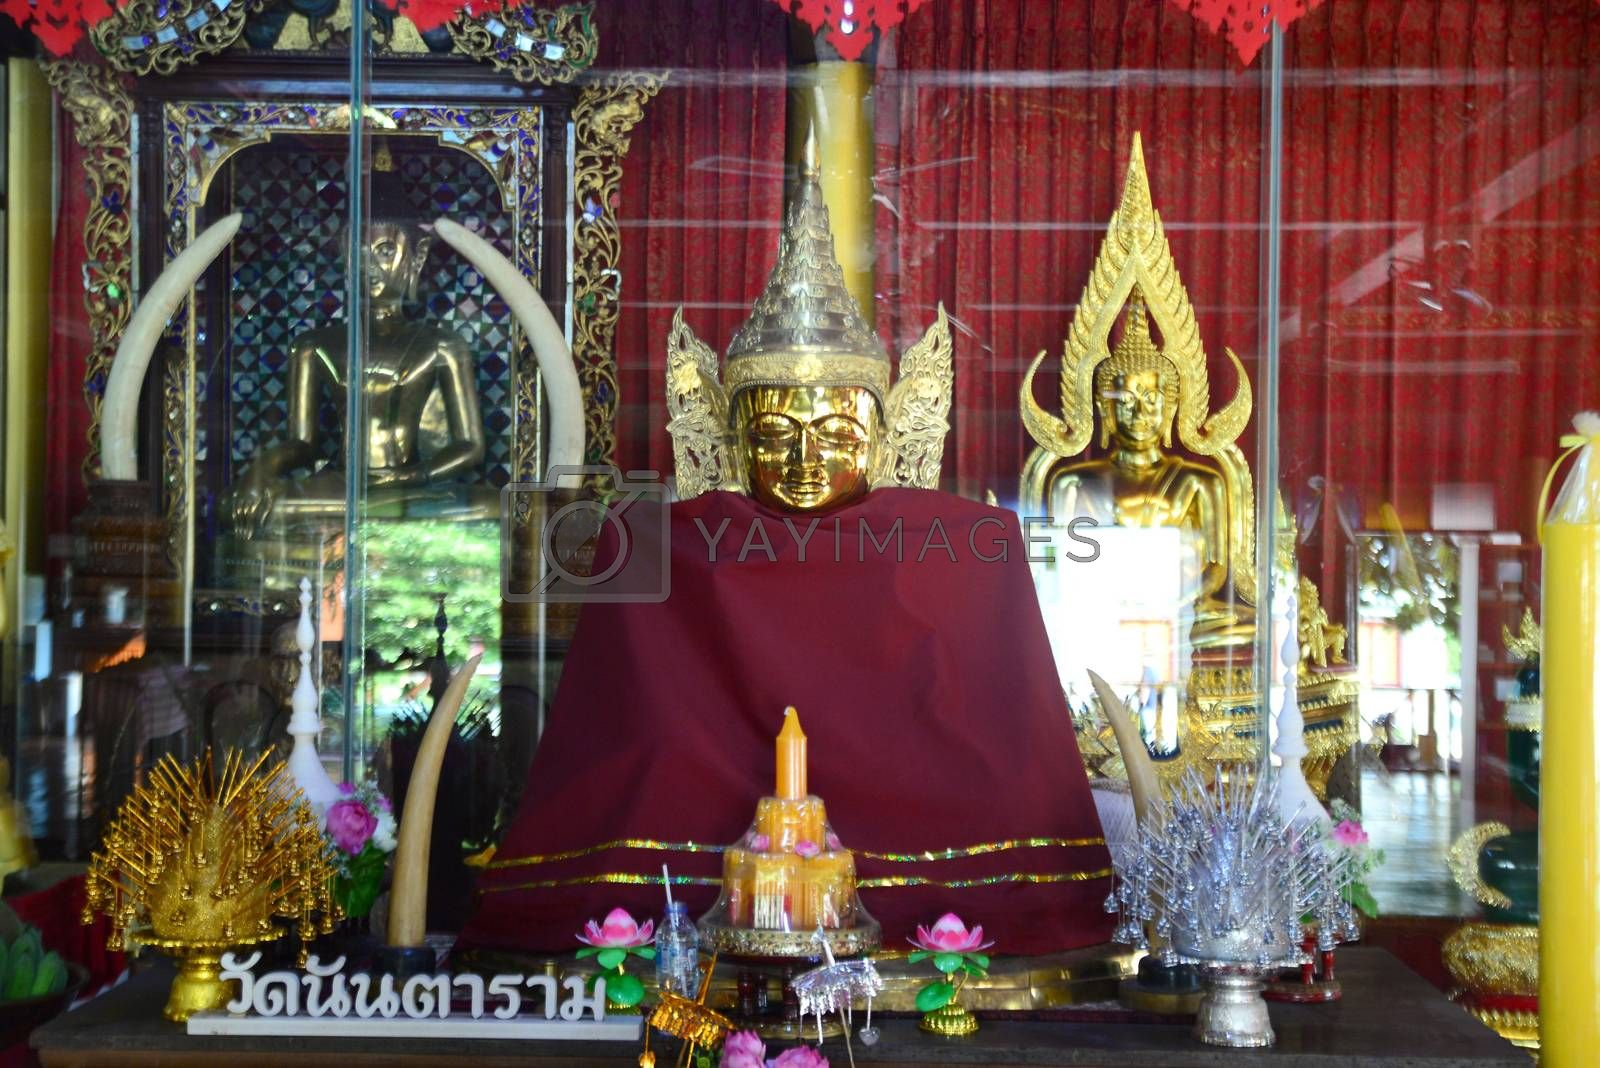 Phayao, Thailand  – 21 December, 2019 : Wat Nantaram, the principle Buddha image crafted from teak wood in the Viharn (sermon hall) of teak wood, exquisitely crafted in traditional Tai Yai style